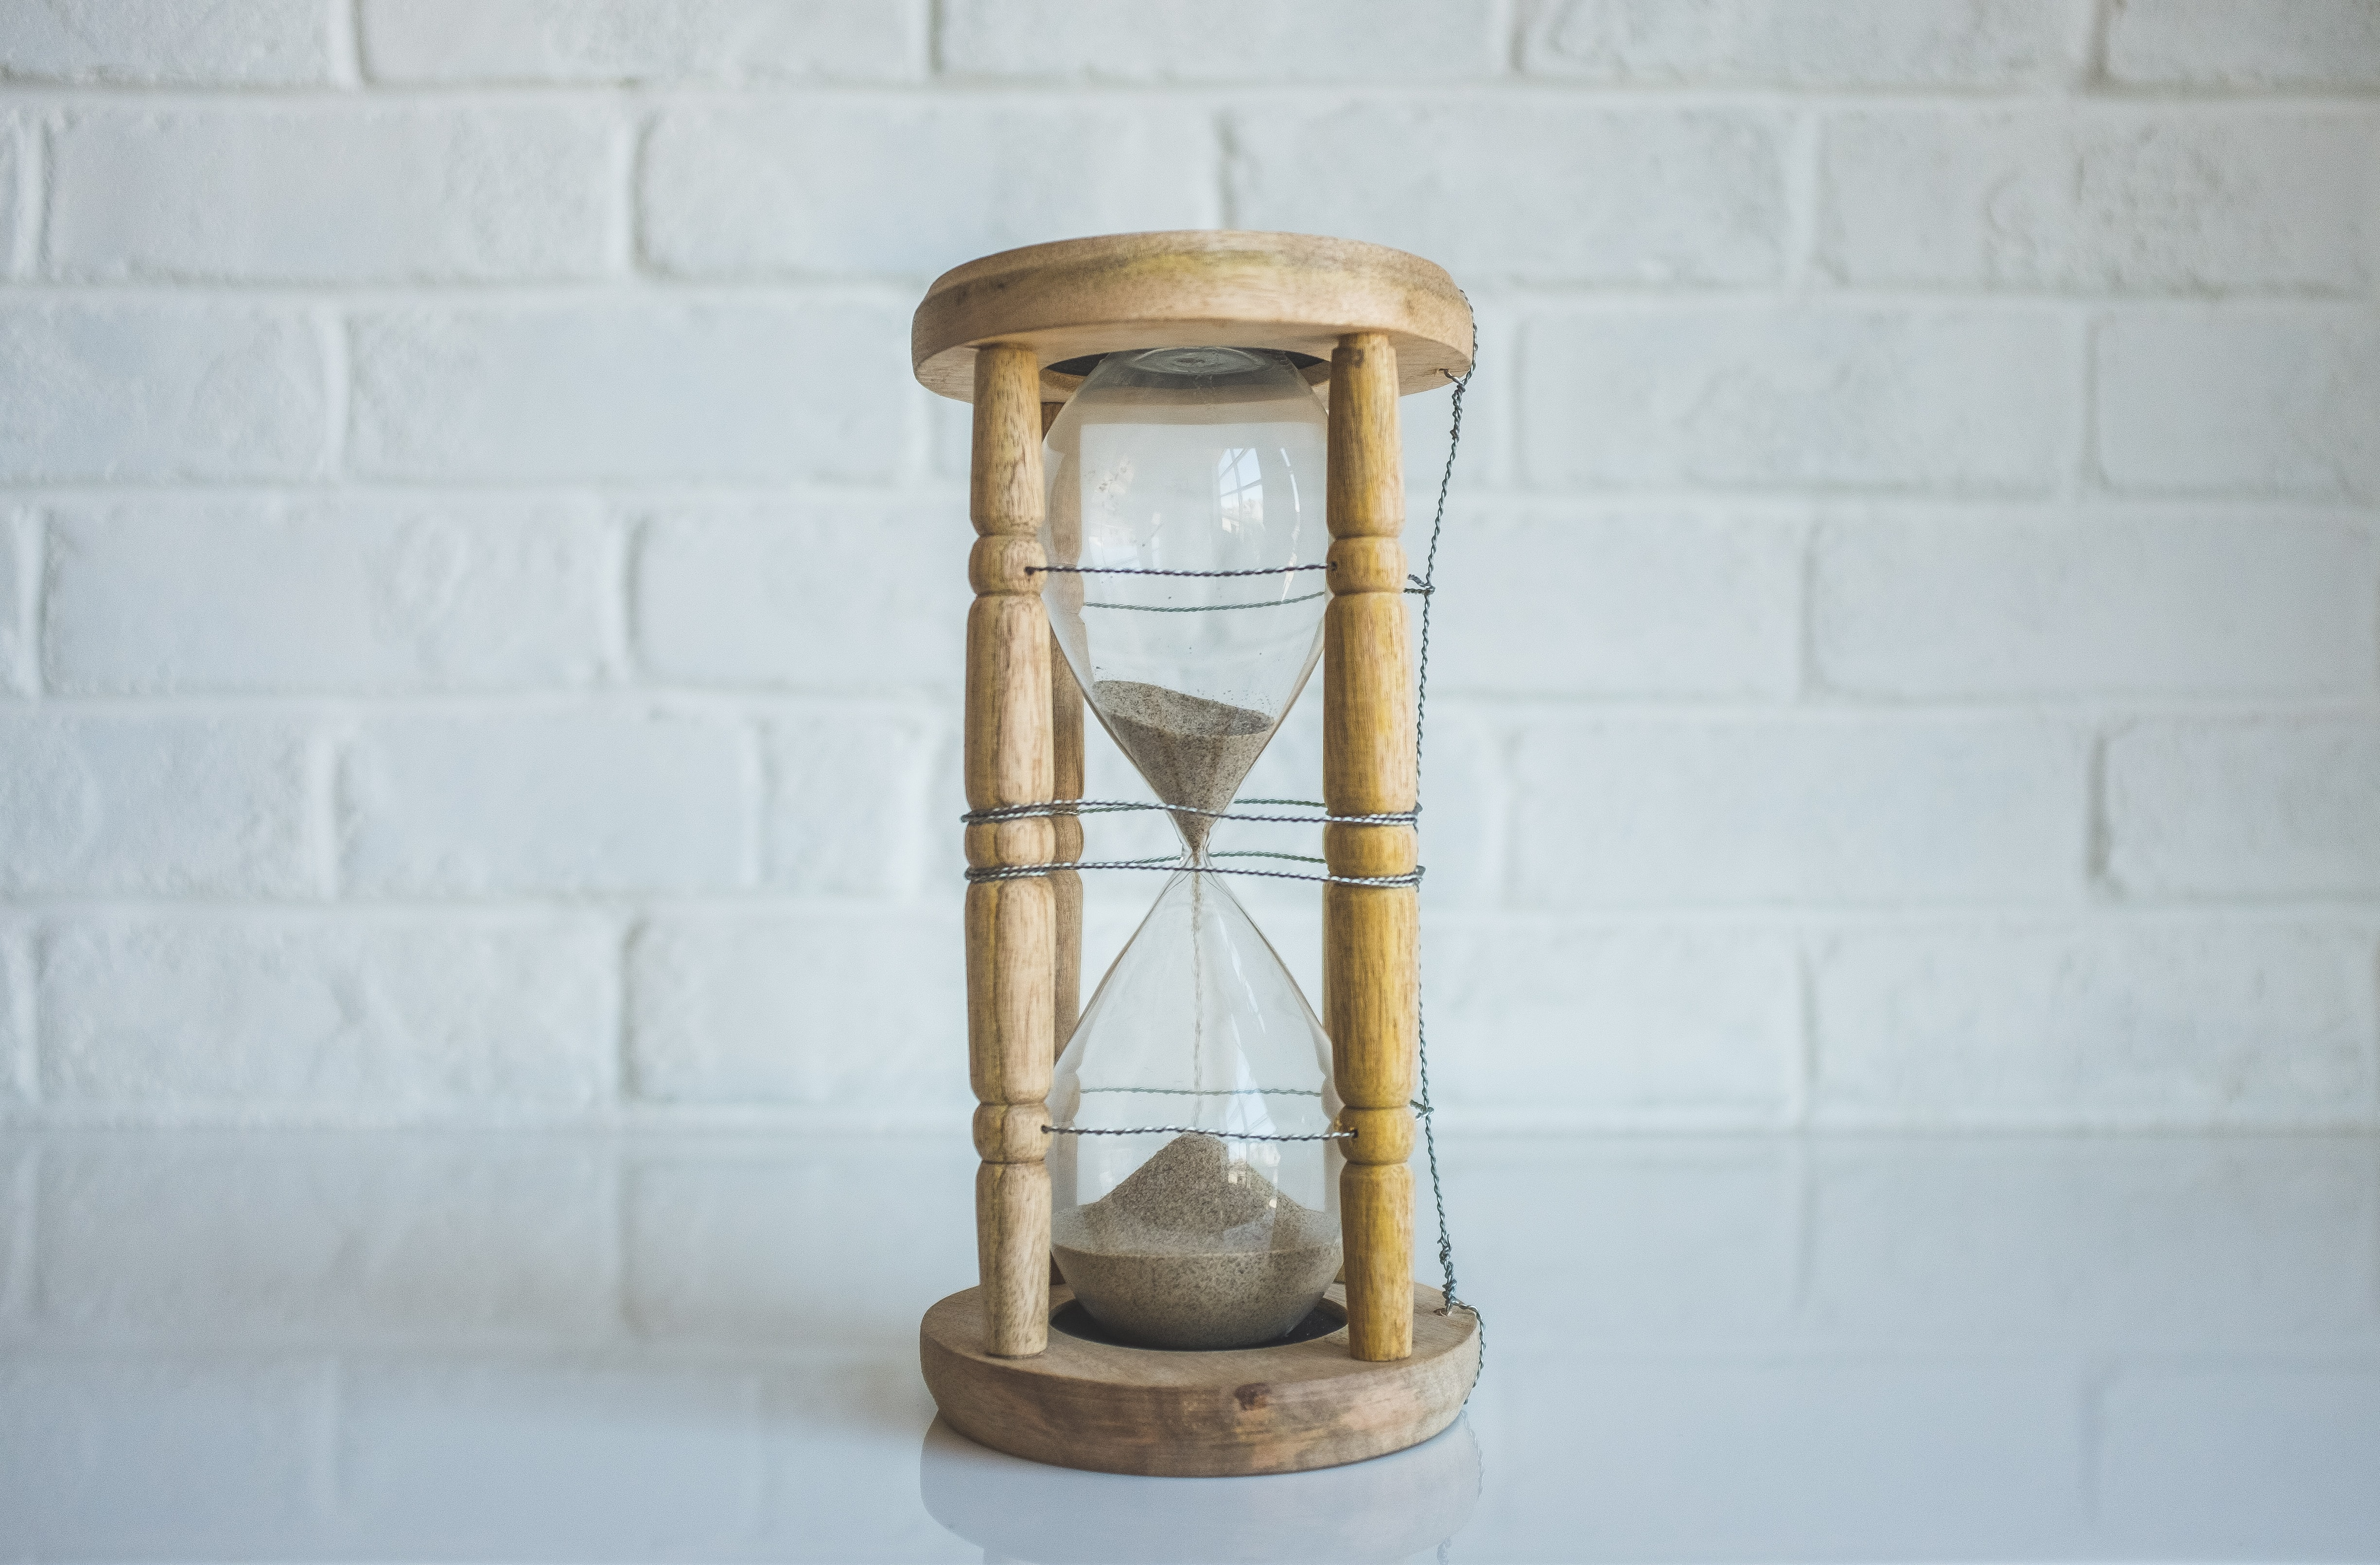 An hourglass with most of its sand on its bottom